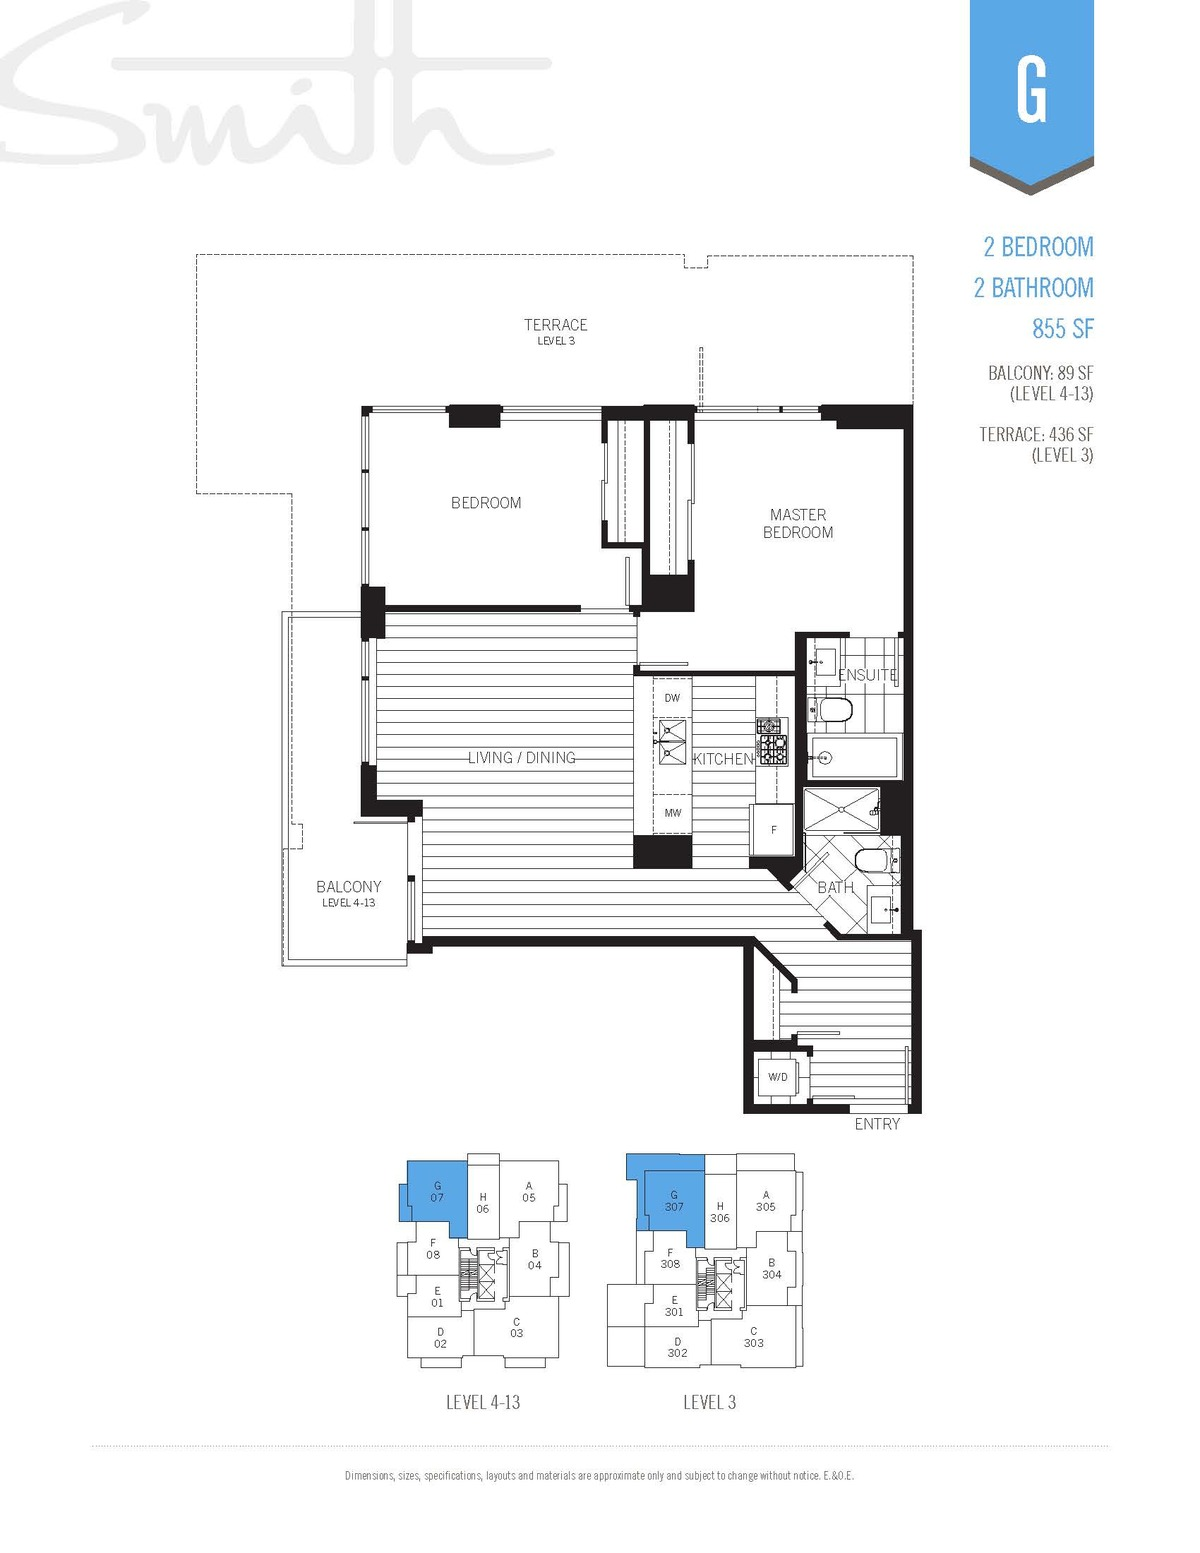 Smith Floorplan G